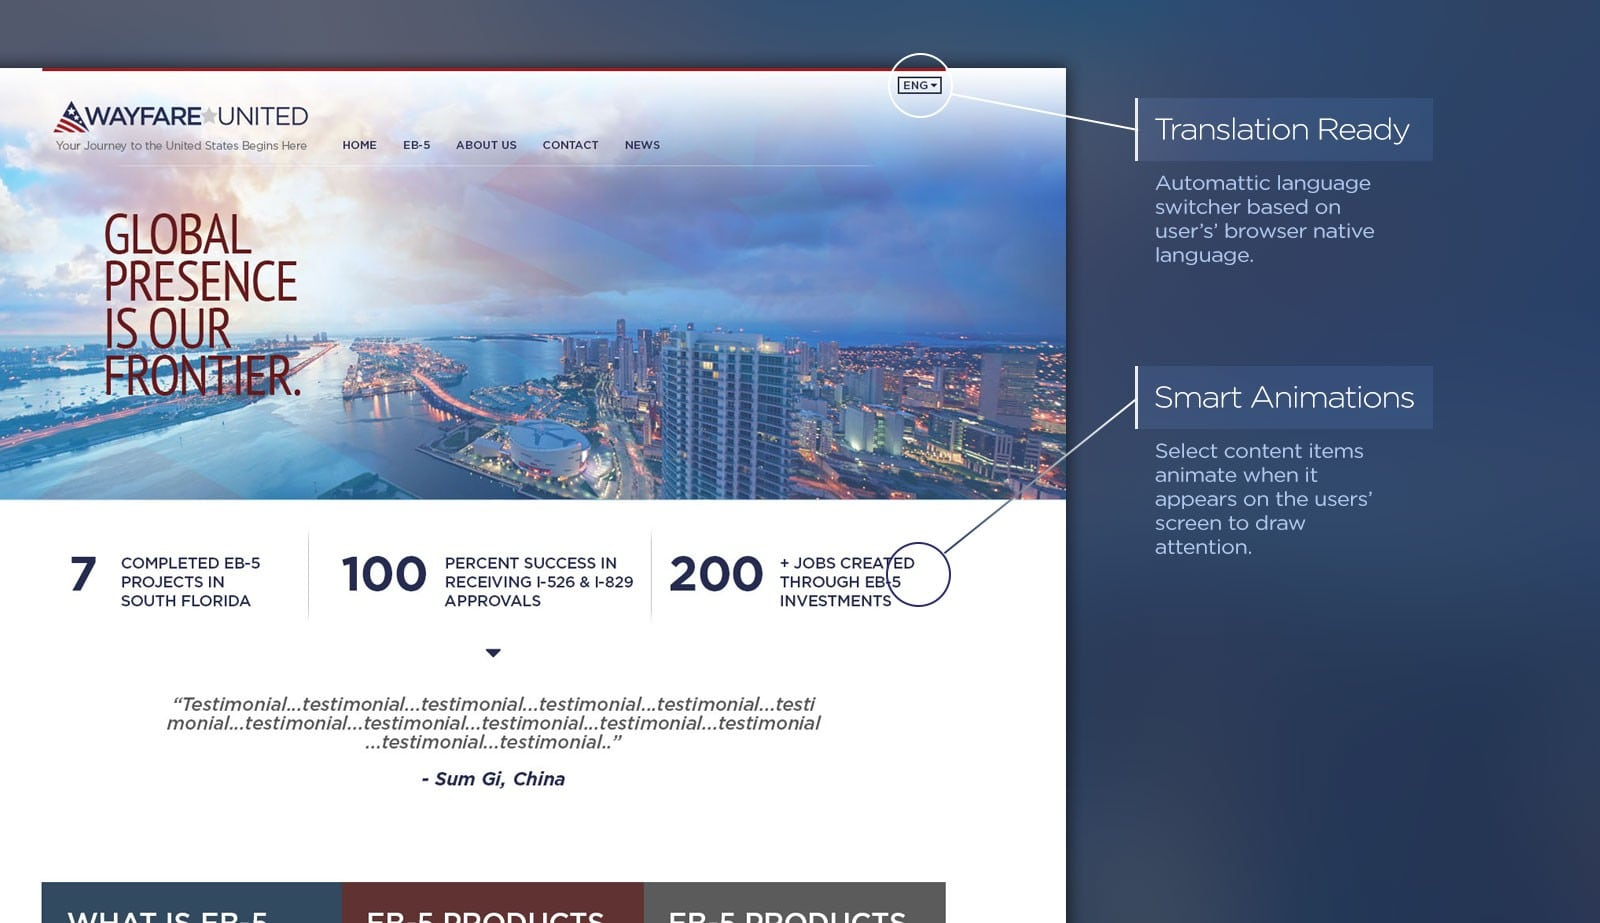 Wayfare United Web Design